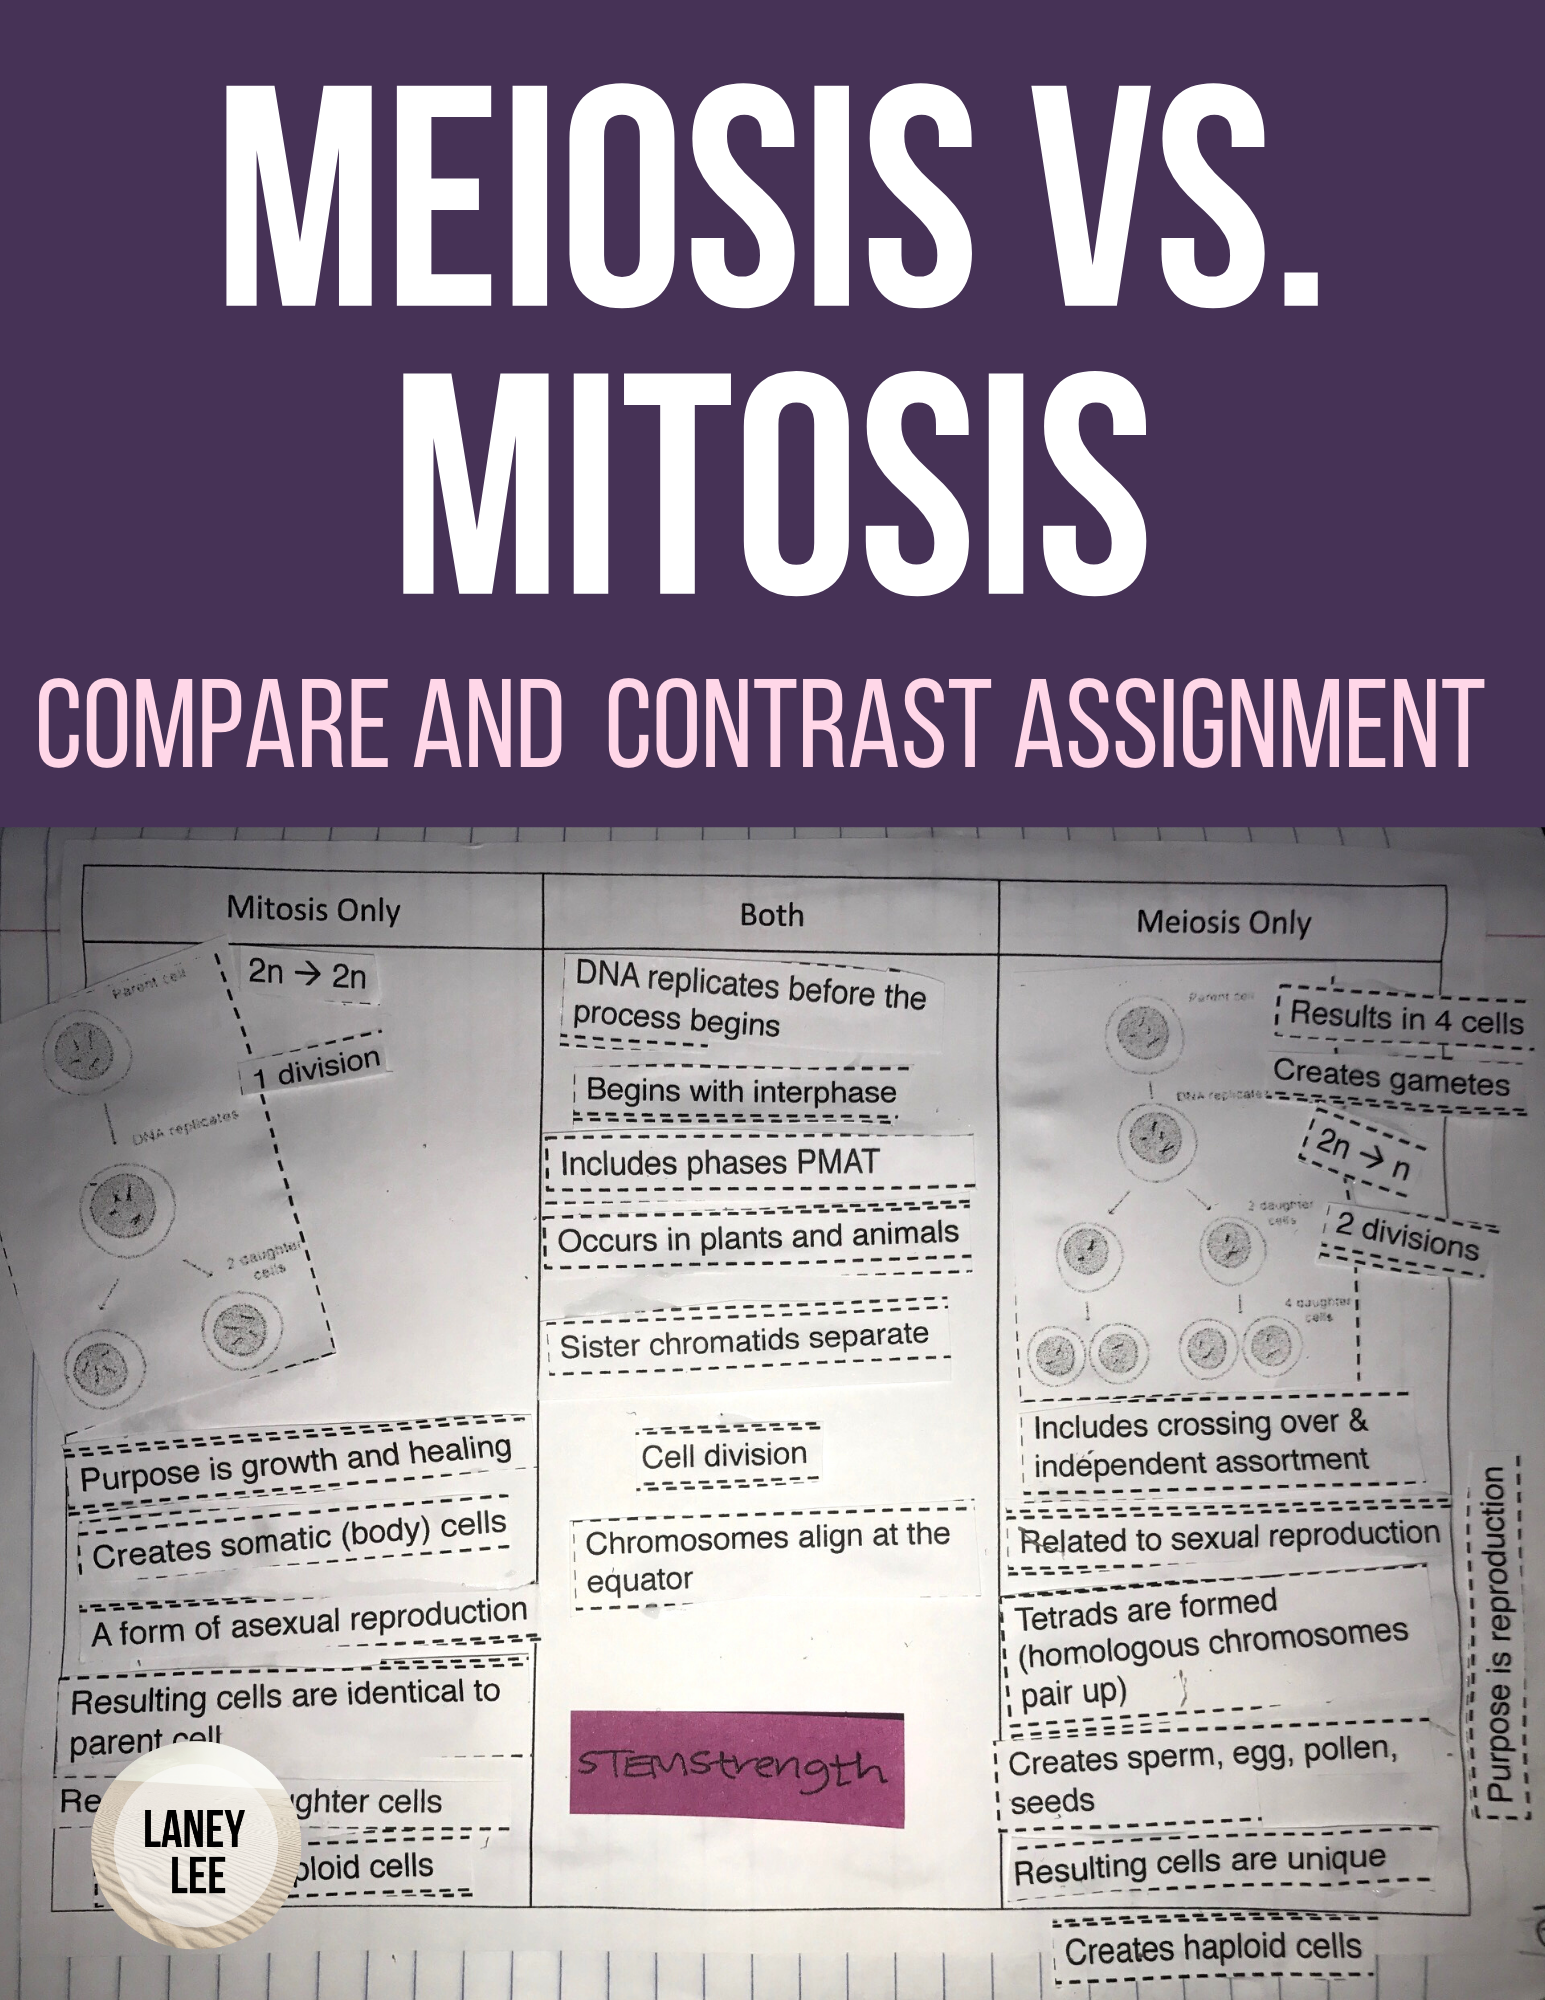 Meiosis Vs Mitosis Compare And Contrast